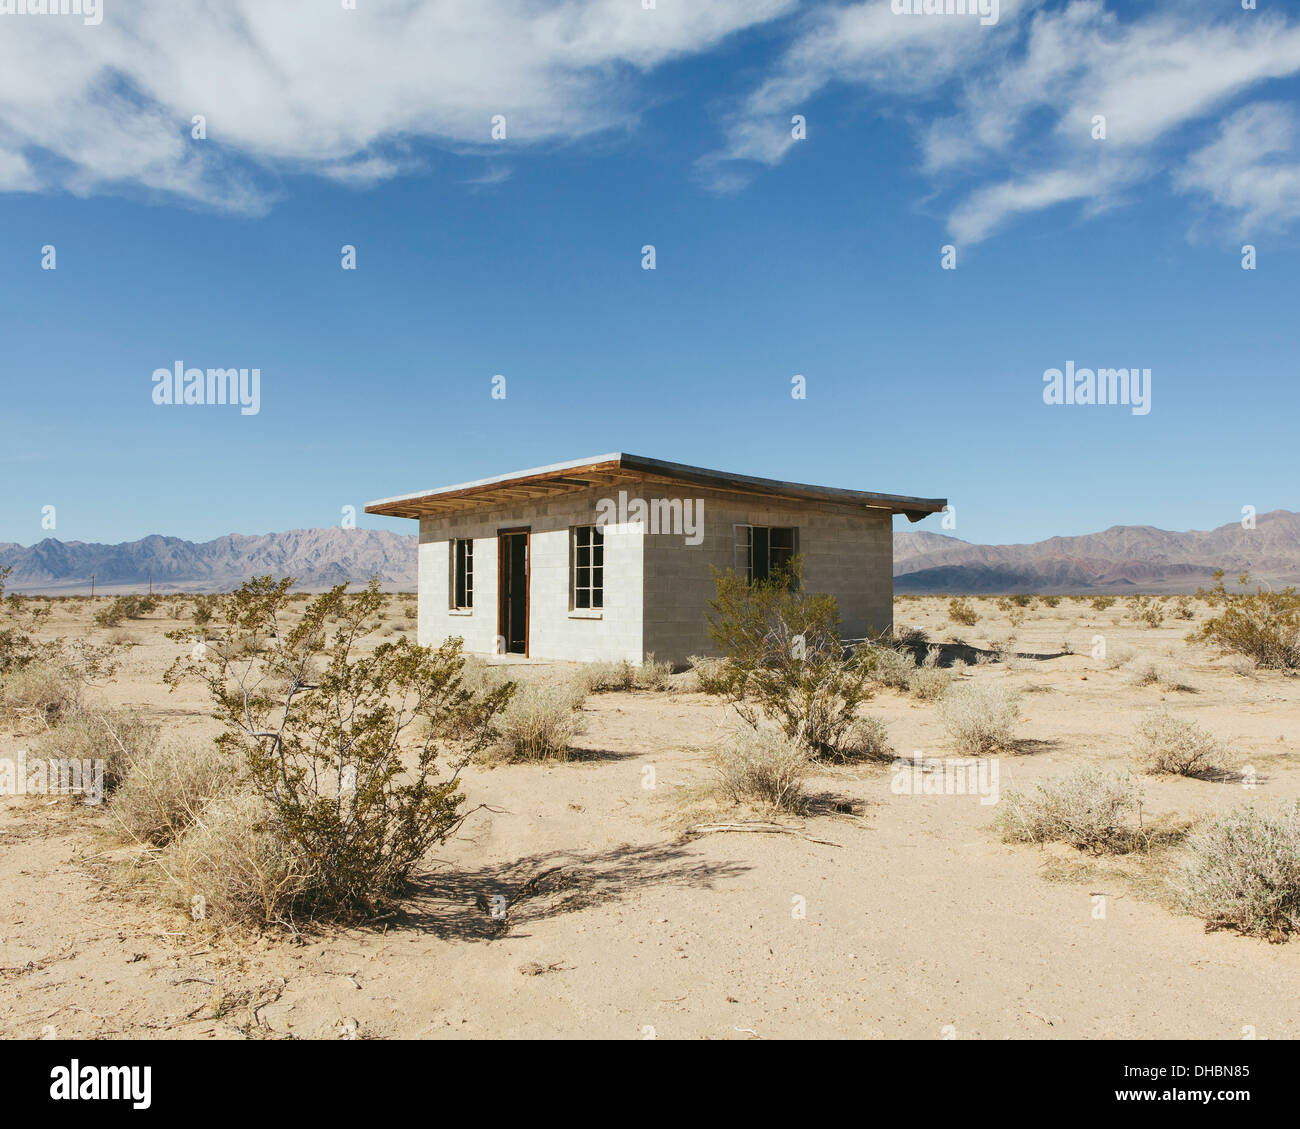 A small abandoned building in the mojave desert landscape for Www newhouse com